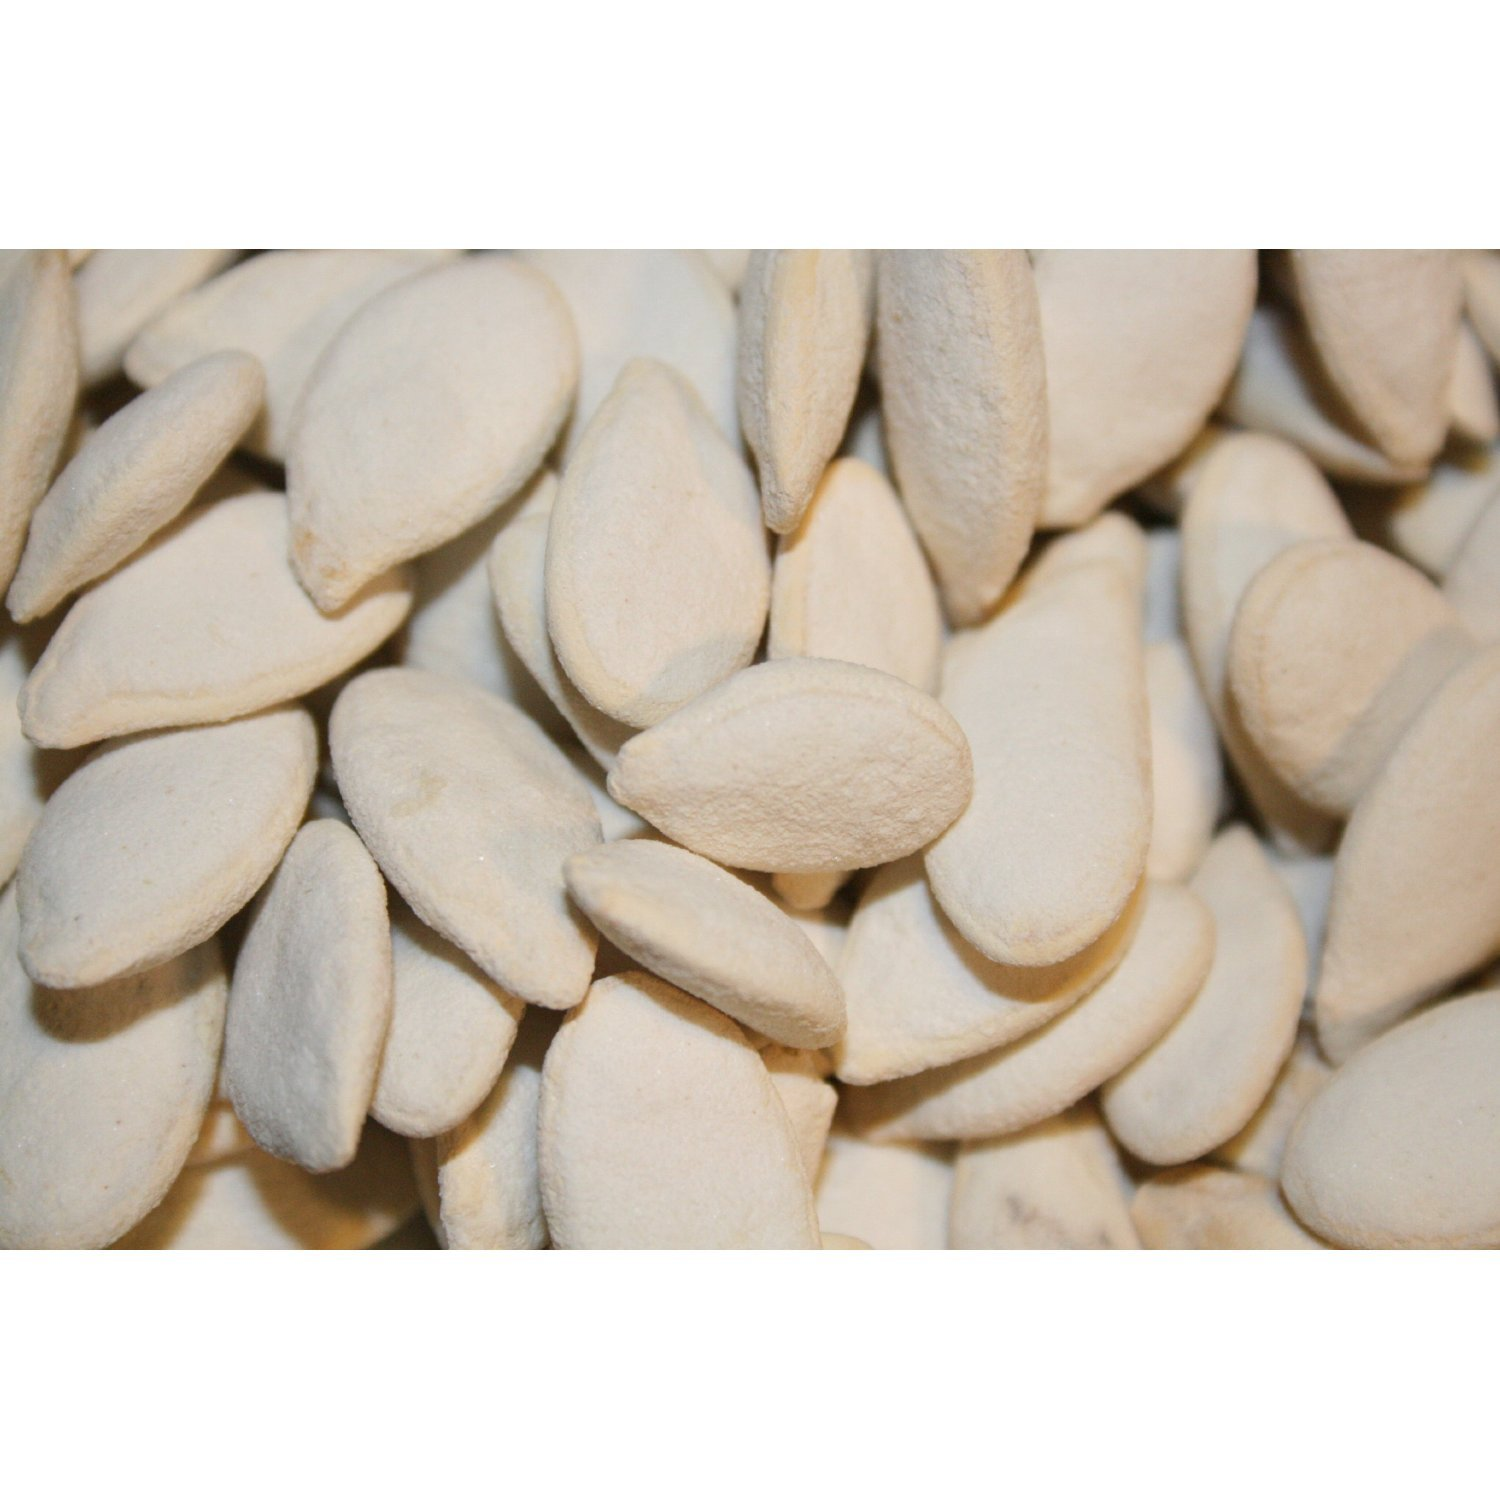 Pumpkin Seeds Roasted Salted, 10 Lbs by Bayside Candy